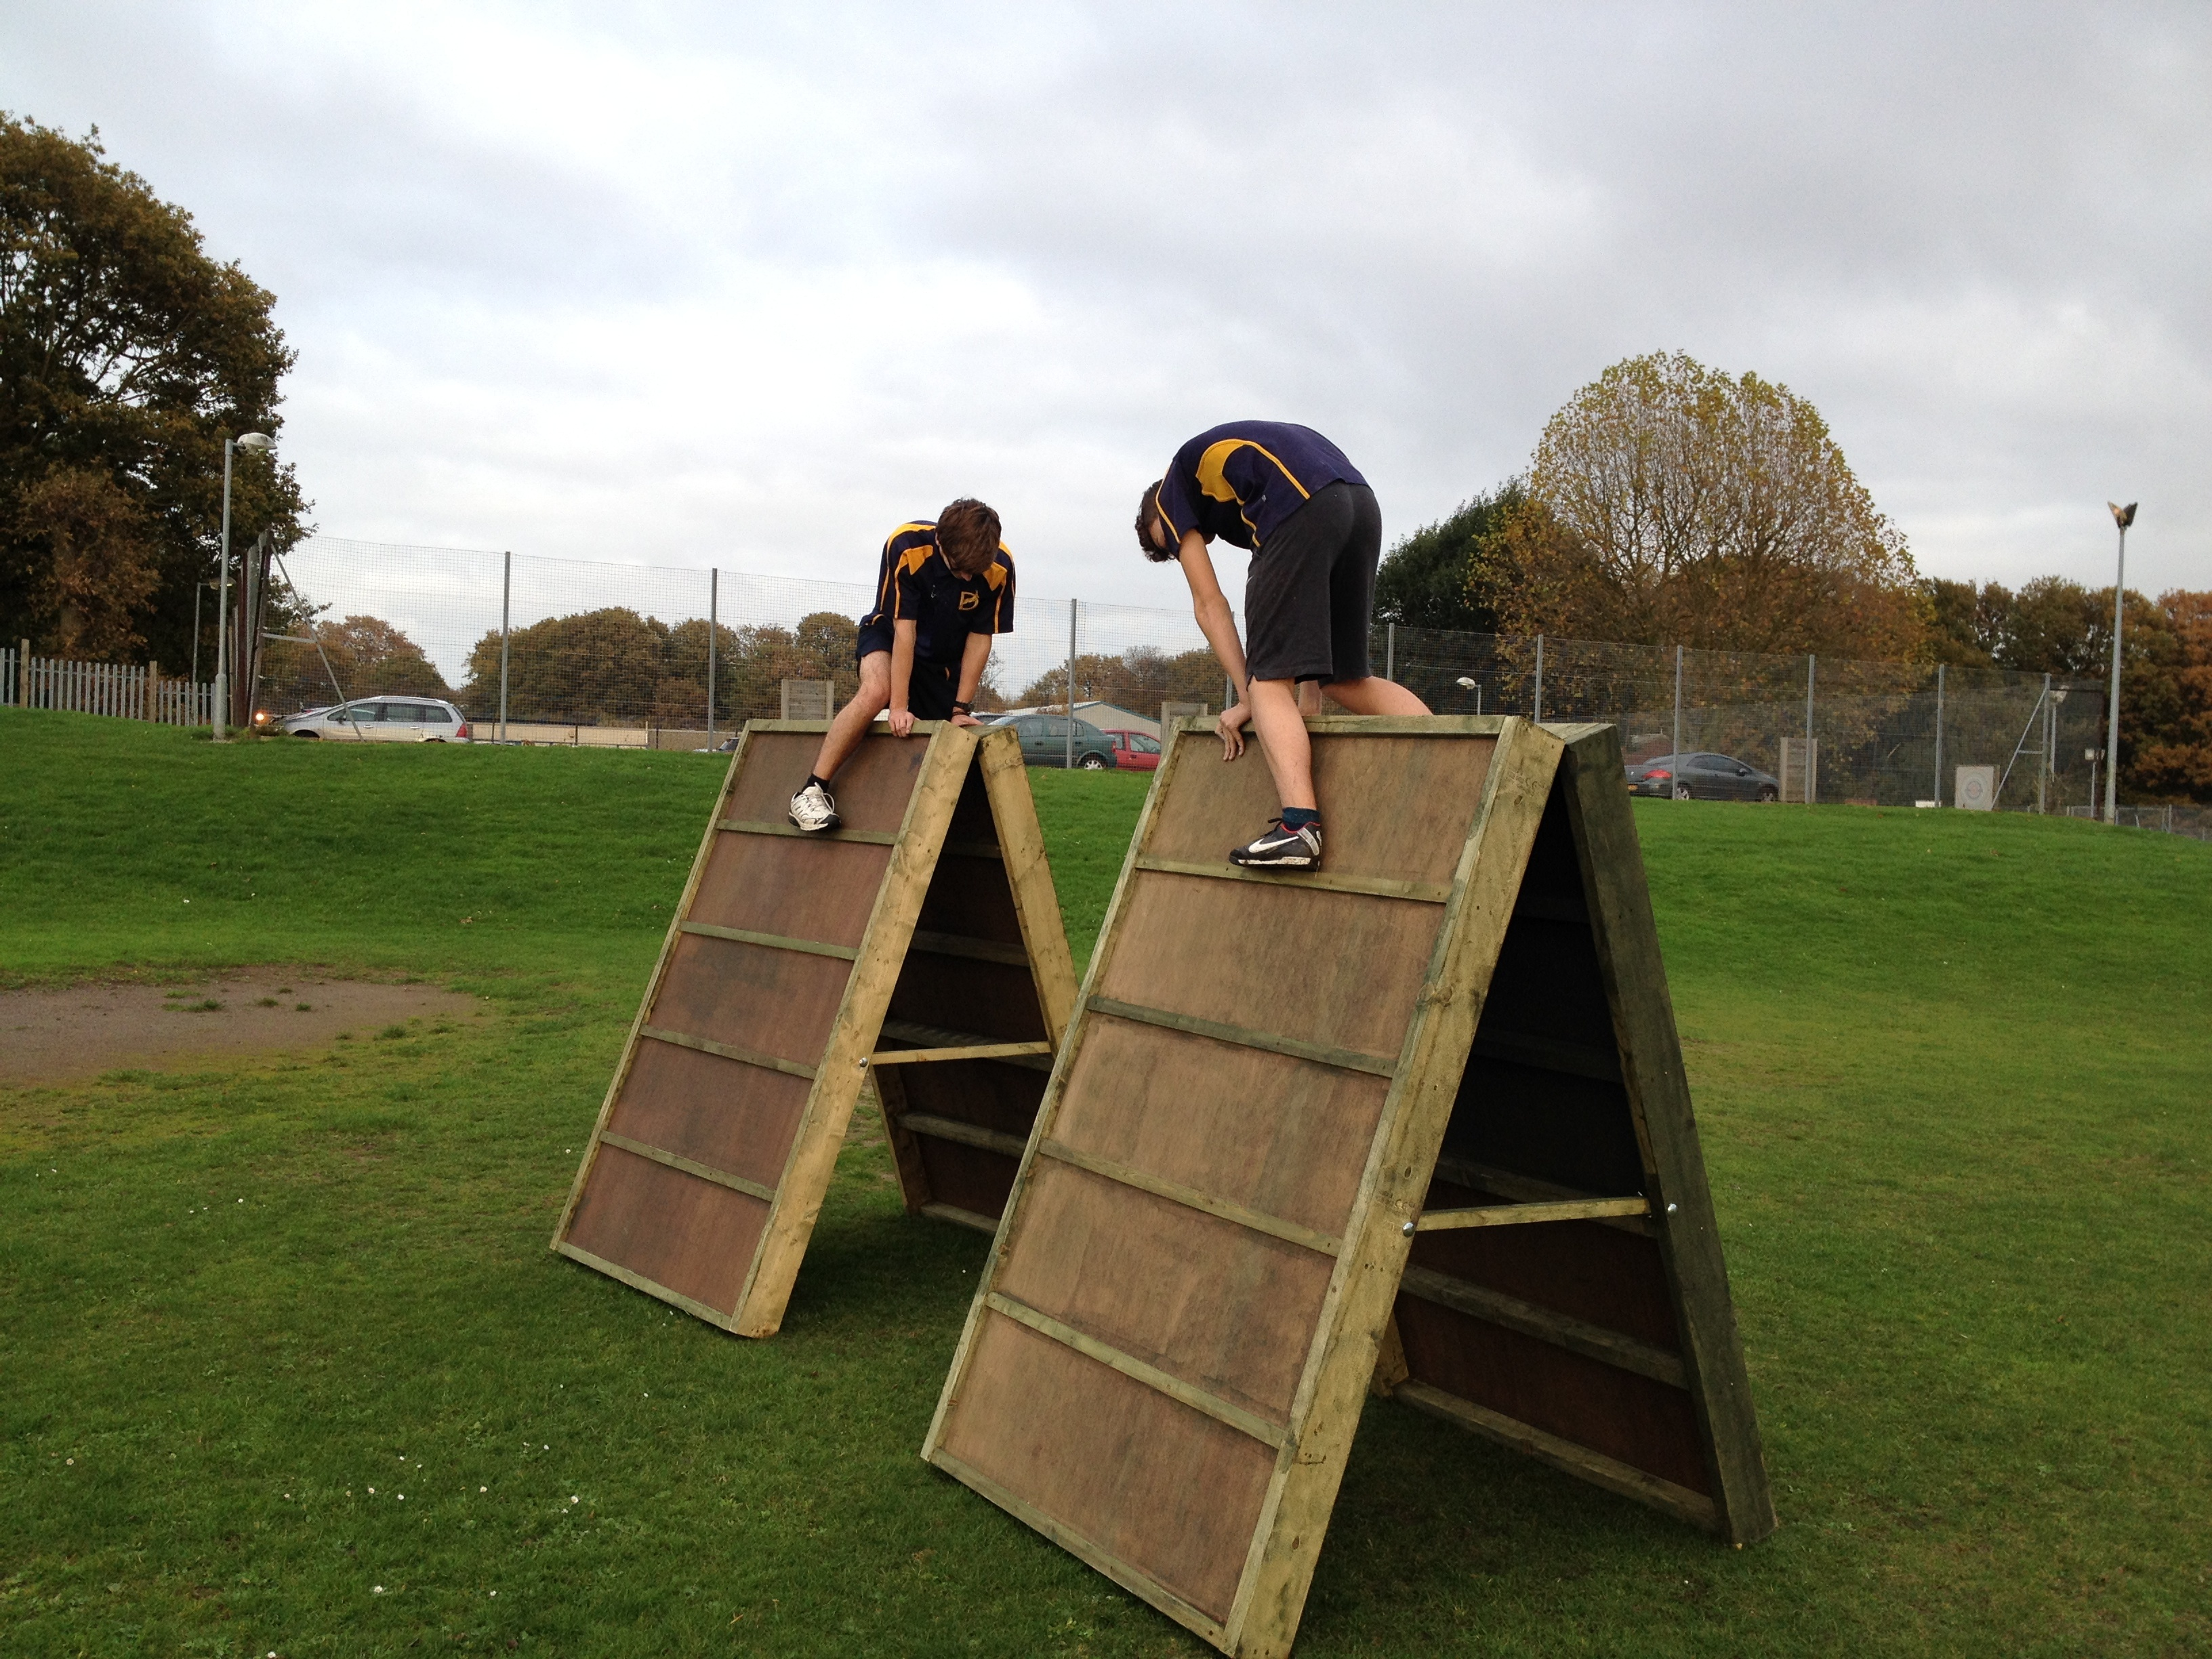 Children On Obstacle Course